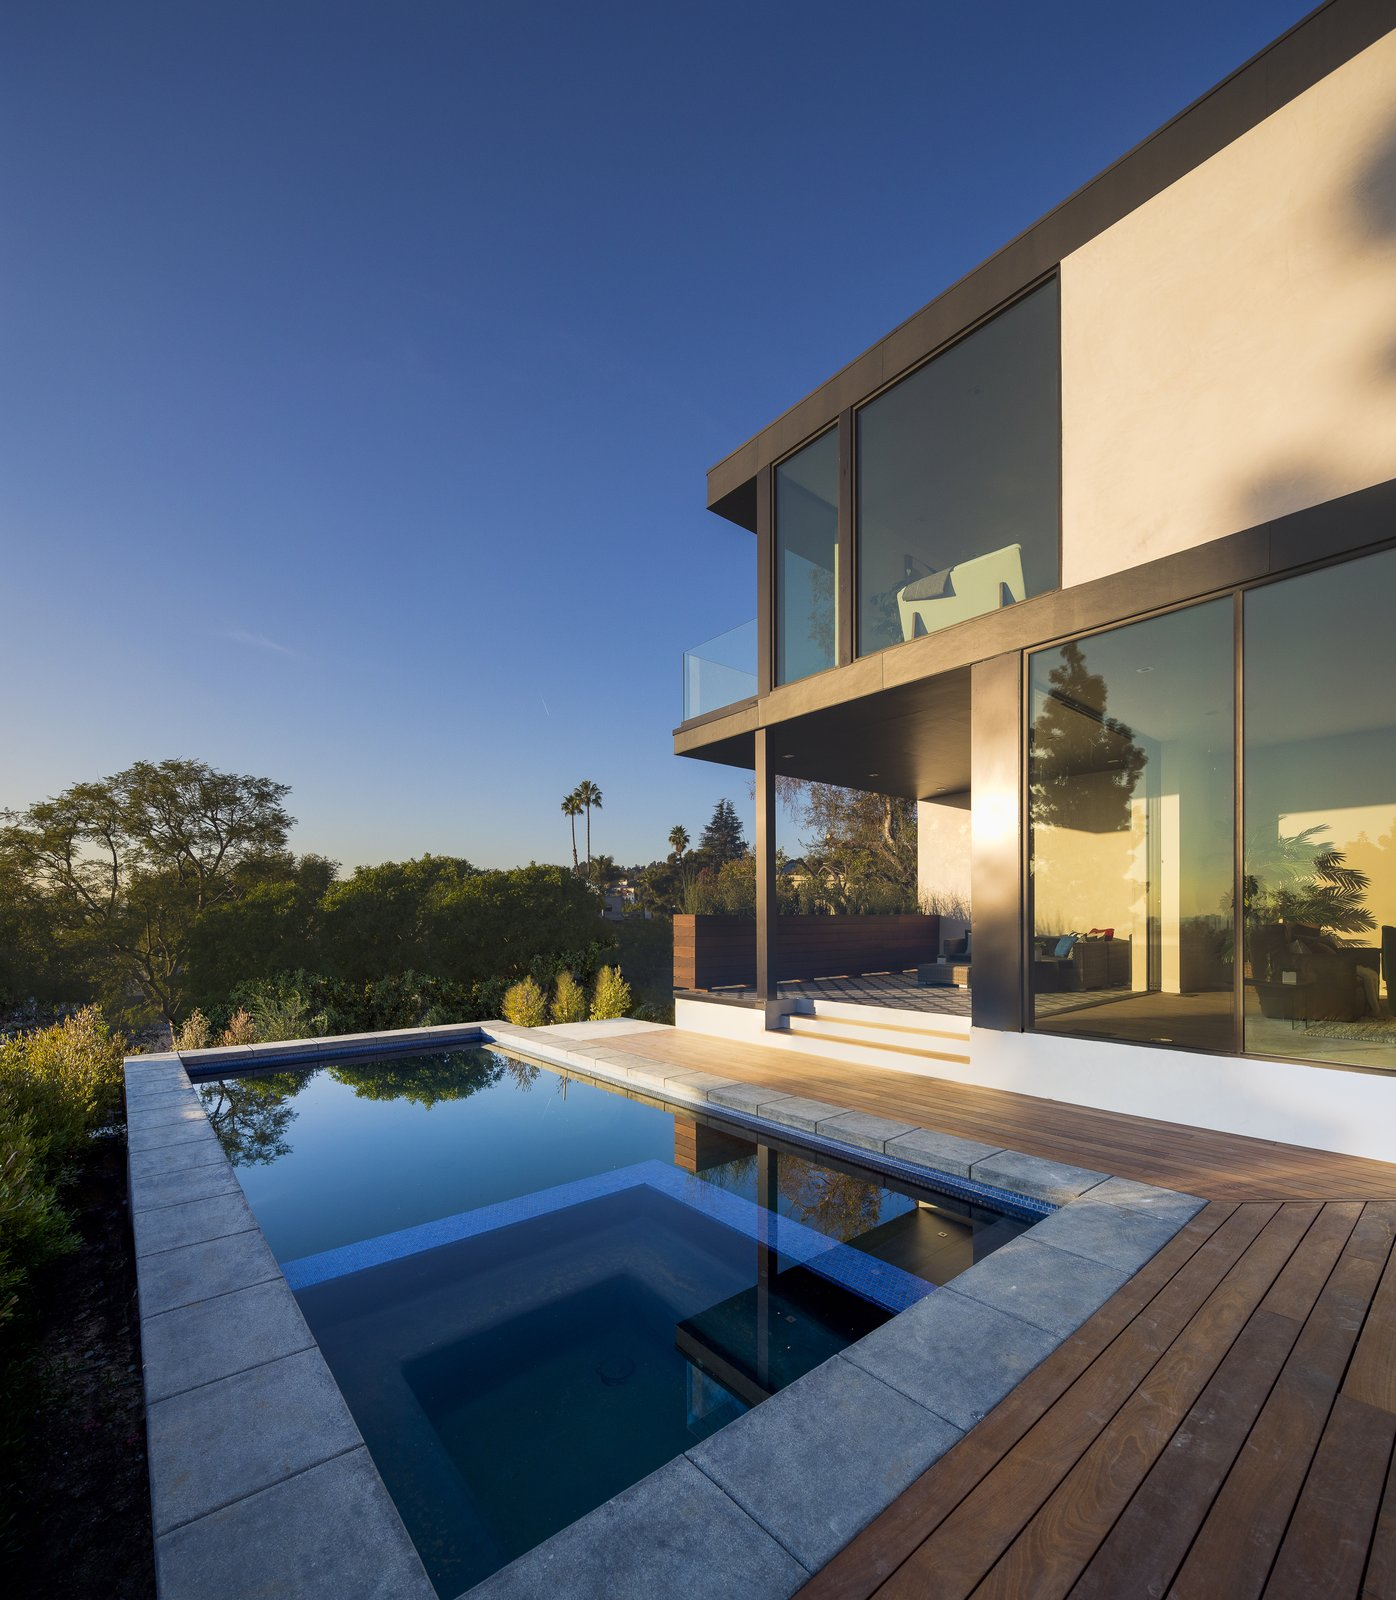 Exterior, Concrete Siding Material, Stucco Siding Material, House Building Type, Metal Roof Material, and Flat RoofLine Pool Deck  SL House by ANX / Aaron Neubert Architects